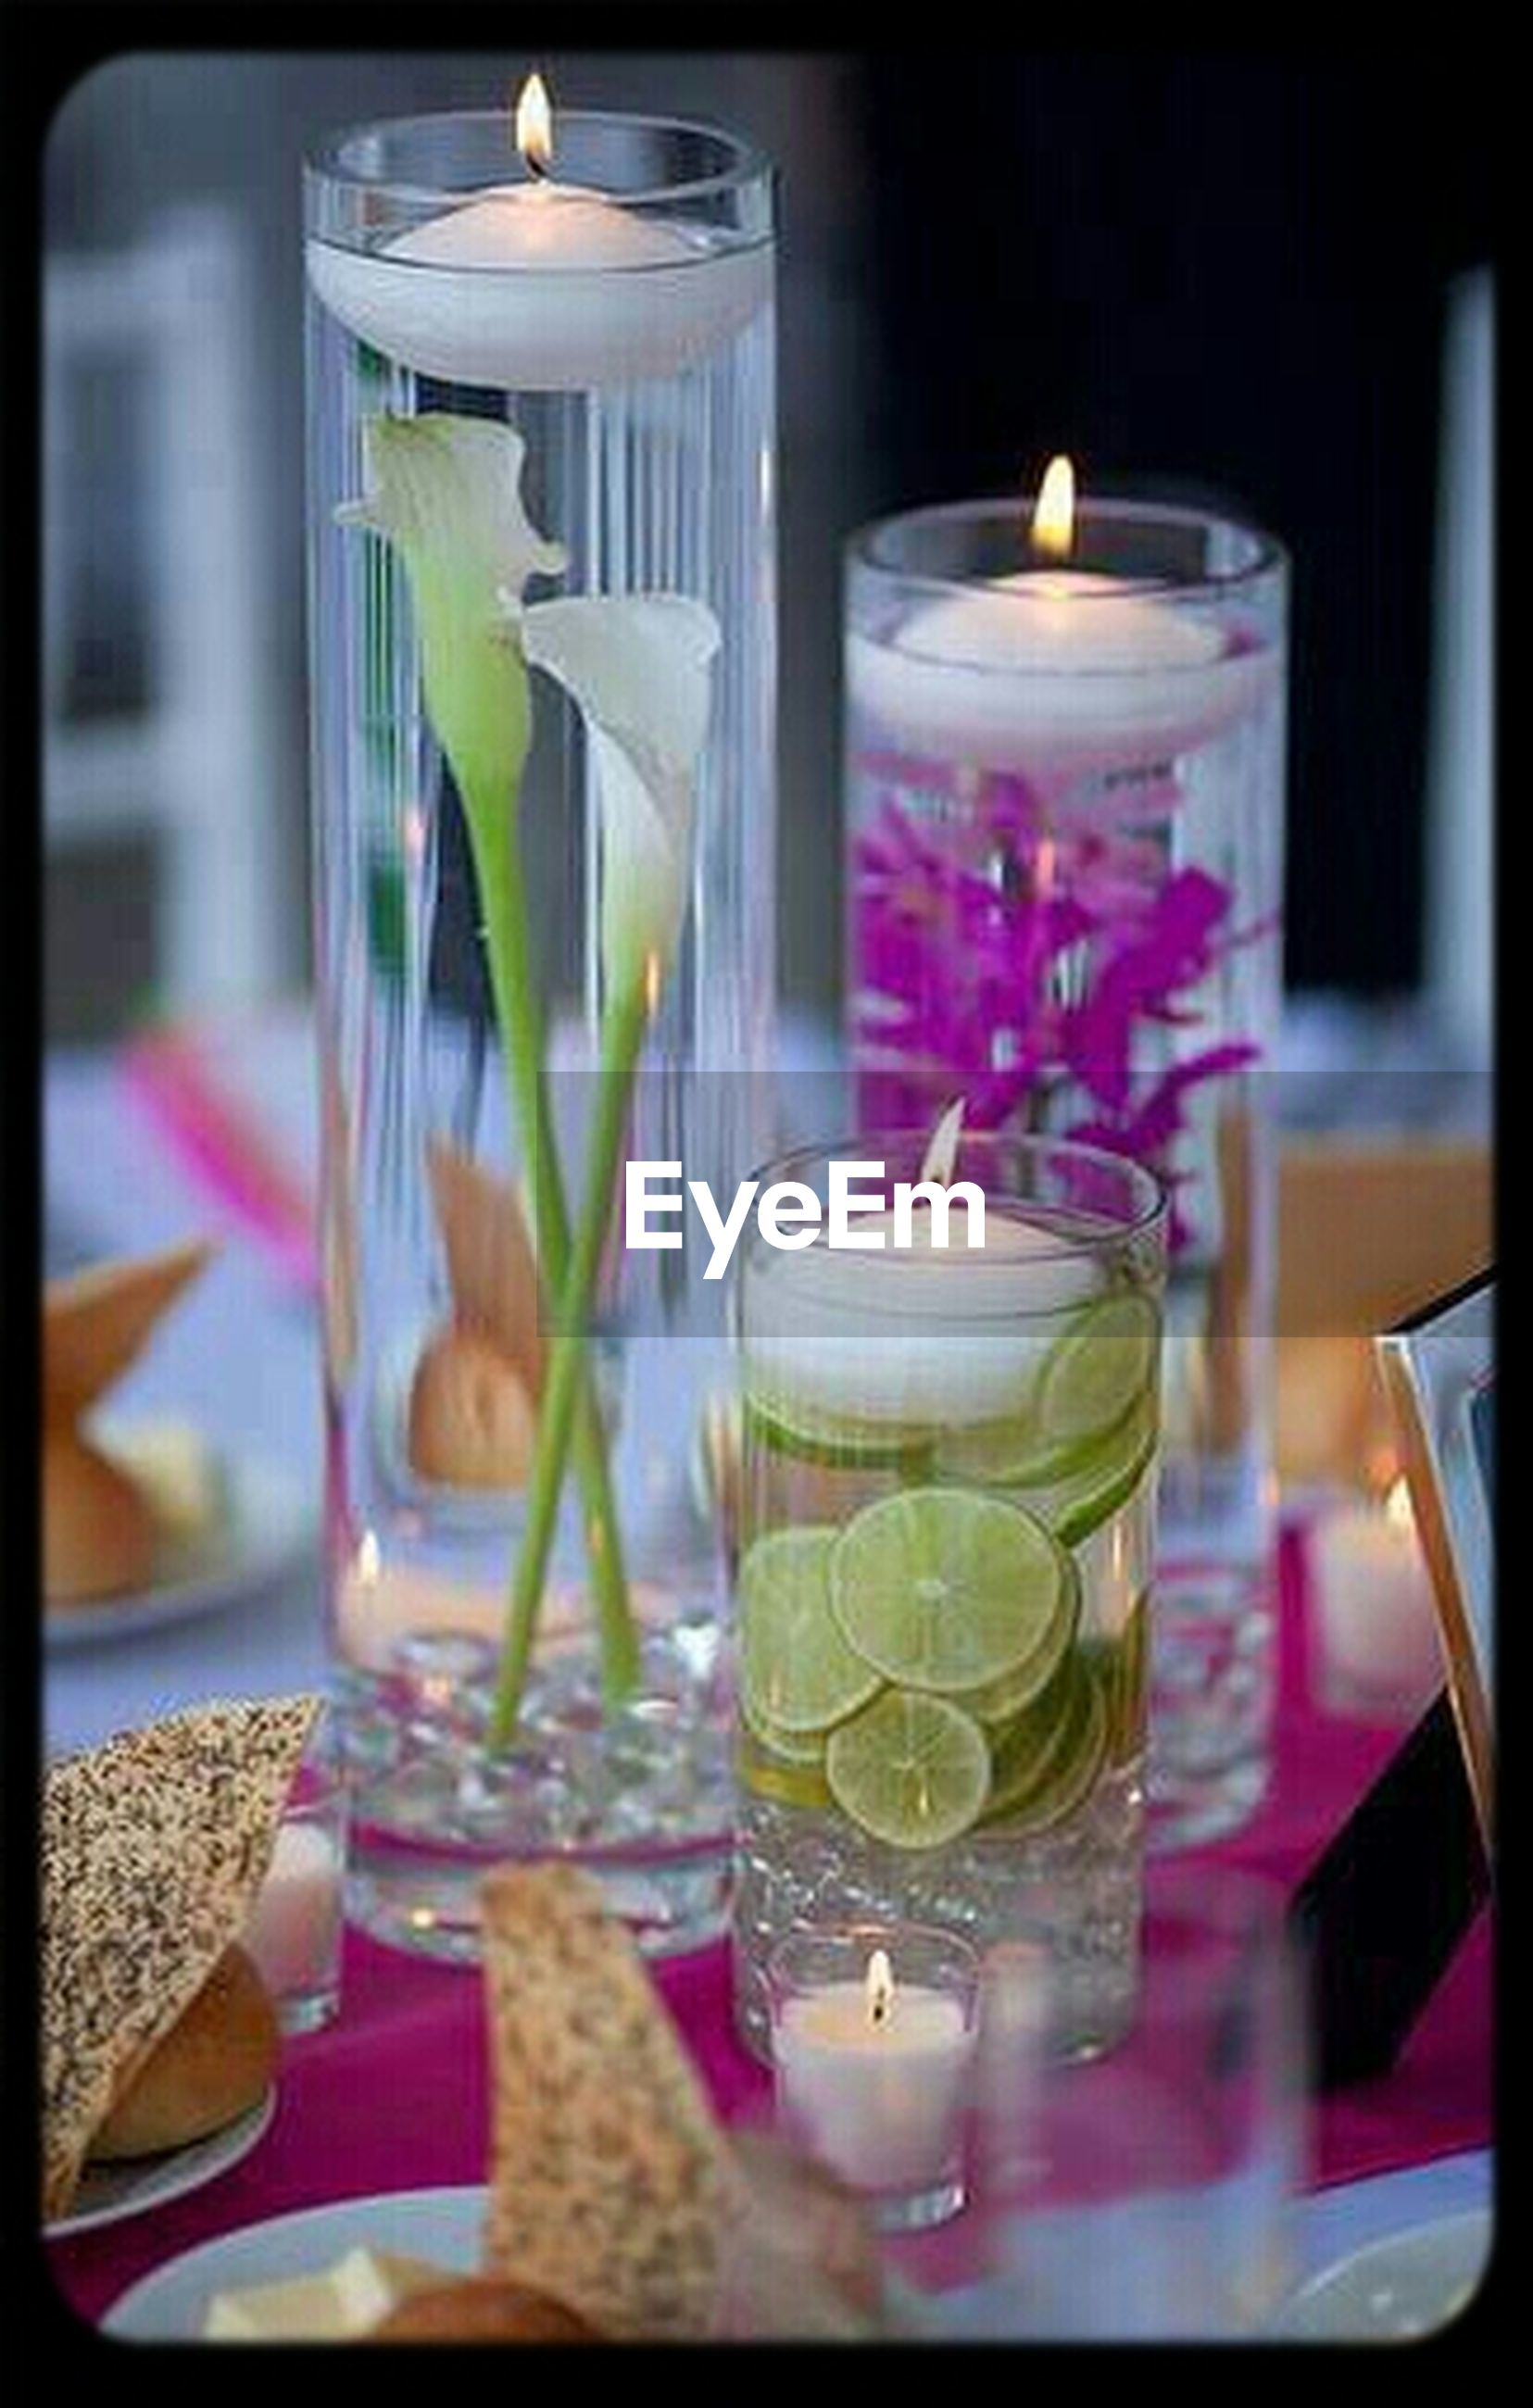 indoors, table, drink, drinking glass, food and drink, glass - material, still life, refreshment, freshness, wineglass, transparent, vase, glass, close-up, restaurant, focus on foreground, alcohol, candle, flower, dining table